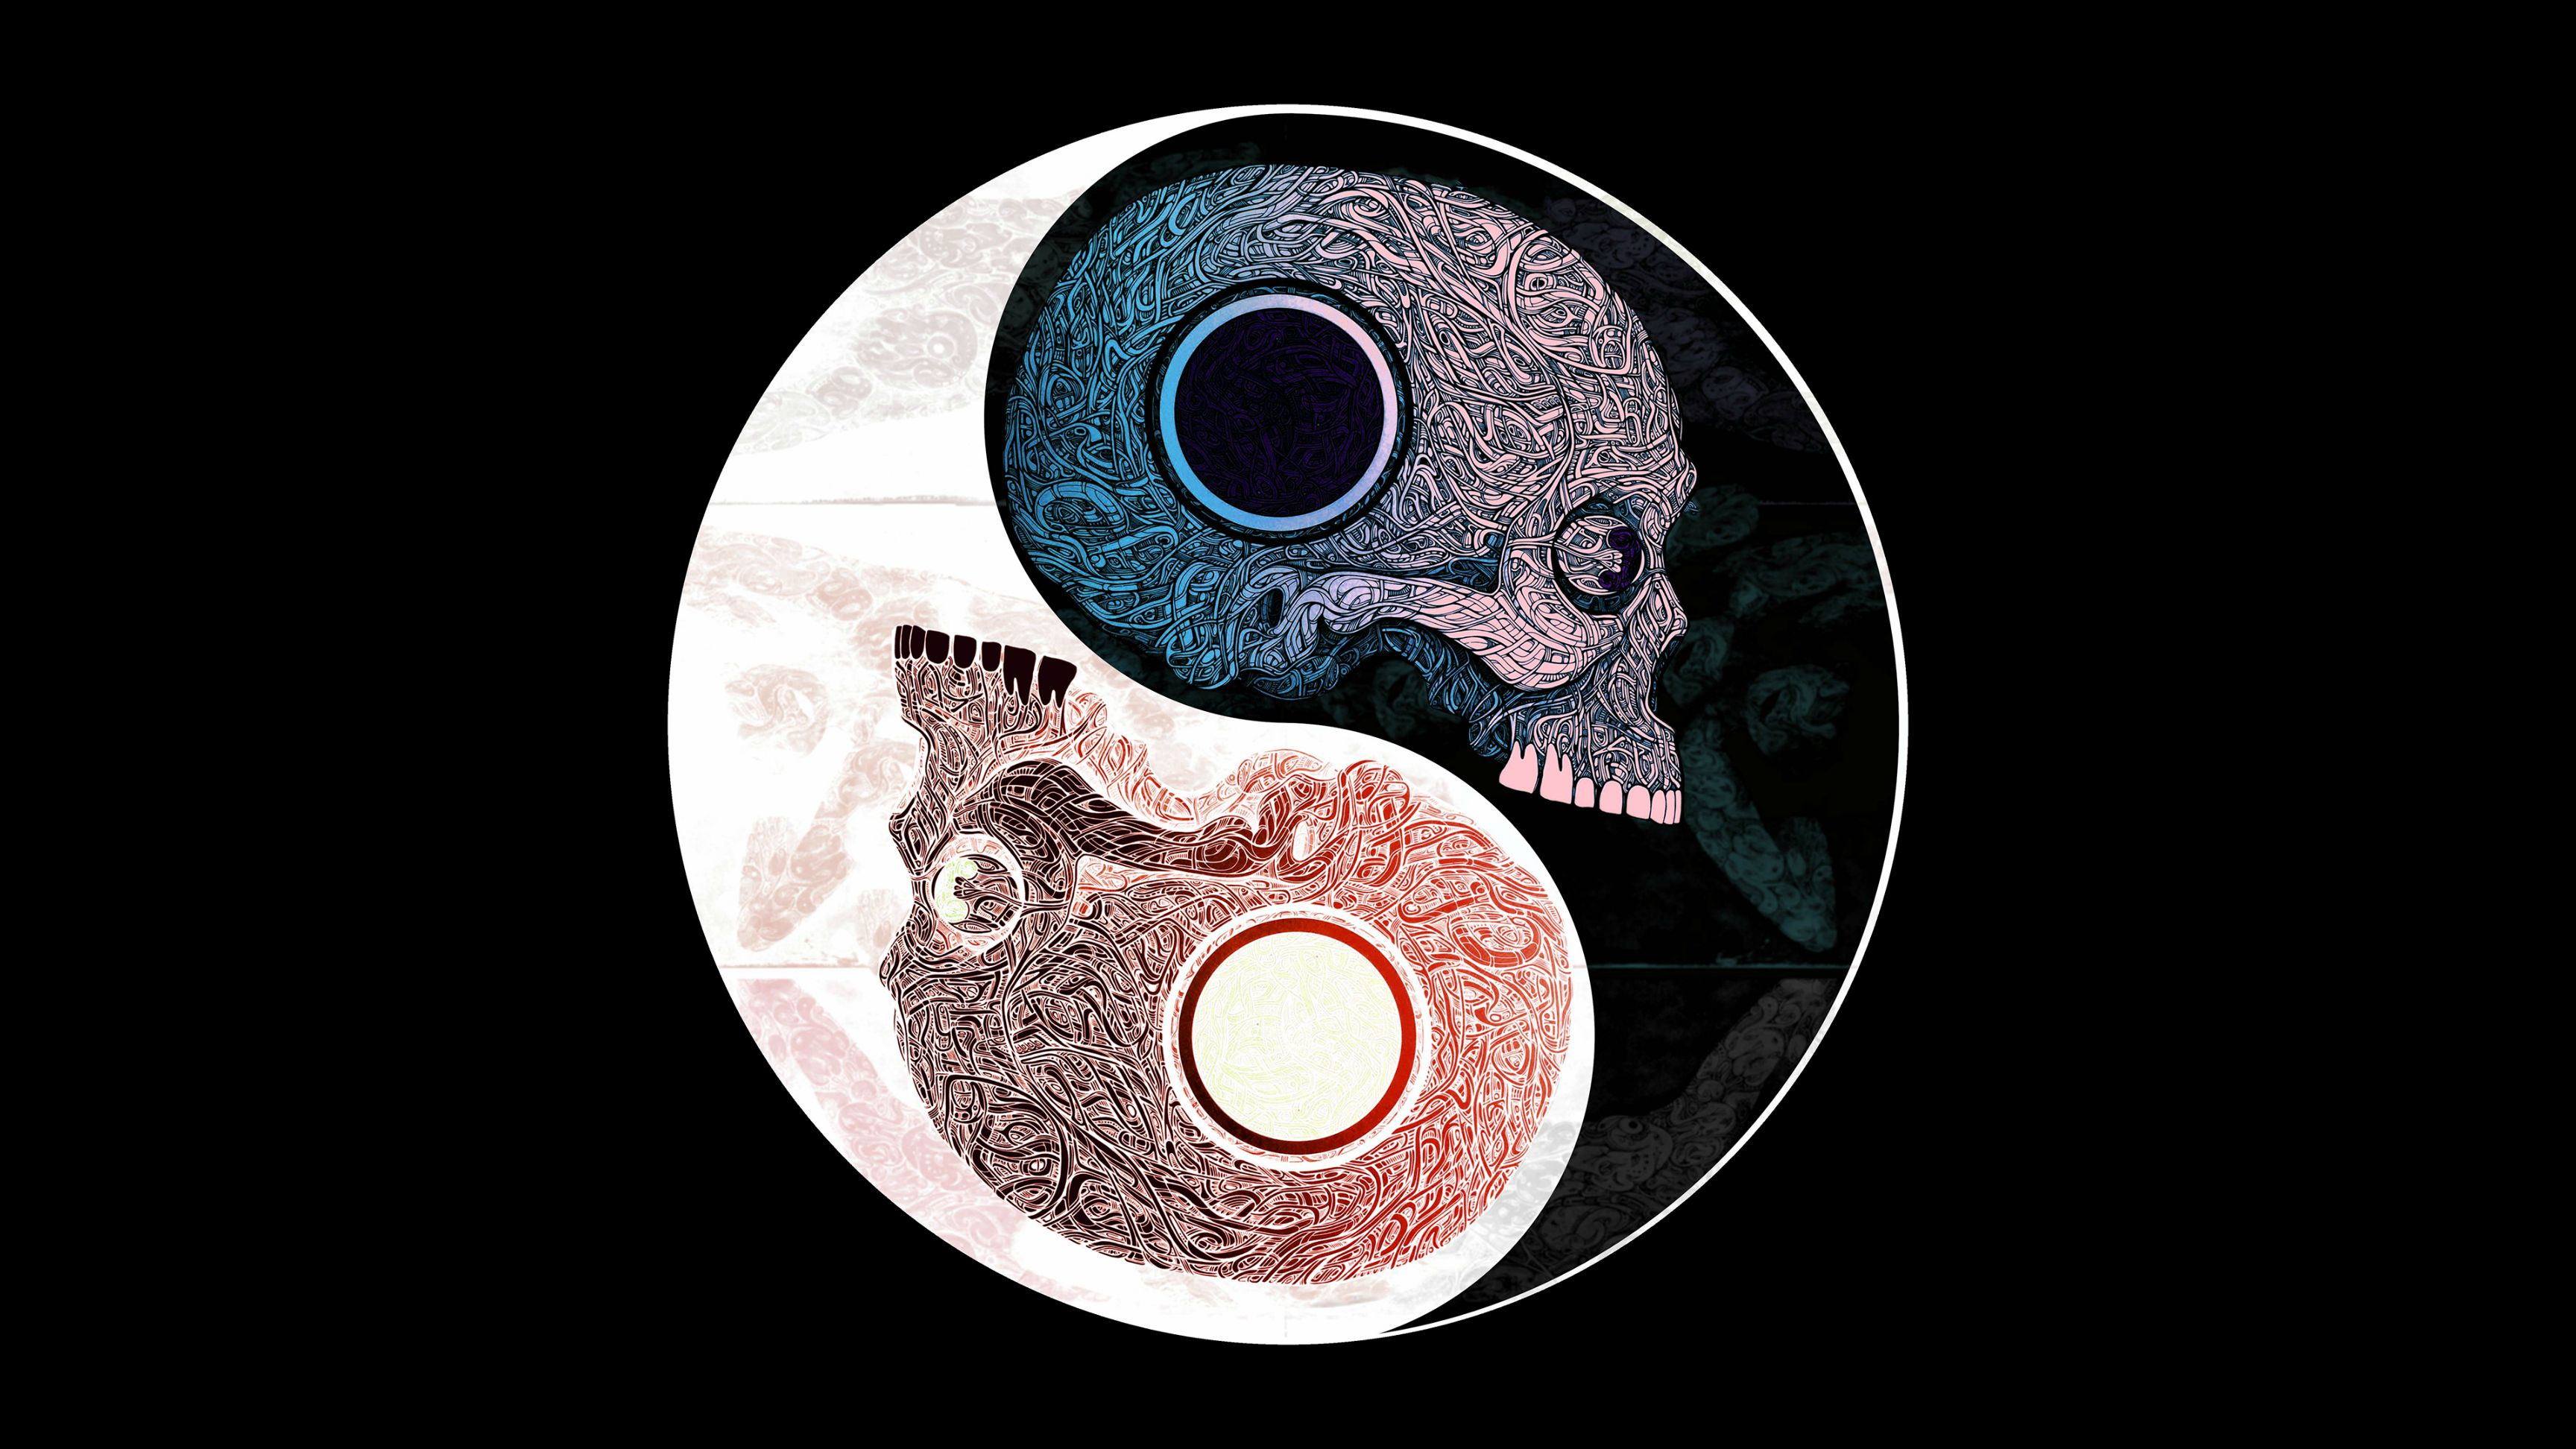 Skull-Yin-Yang-4k-x-Followme-CooliPhoneCase-on-Twitter-Facebook-Google-Instagram-wallpaper-wpc9009186